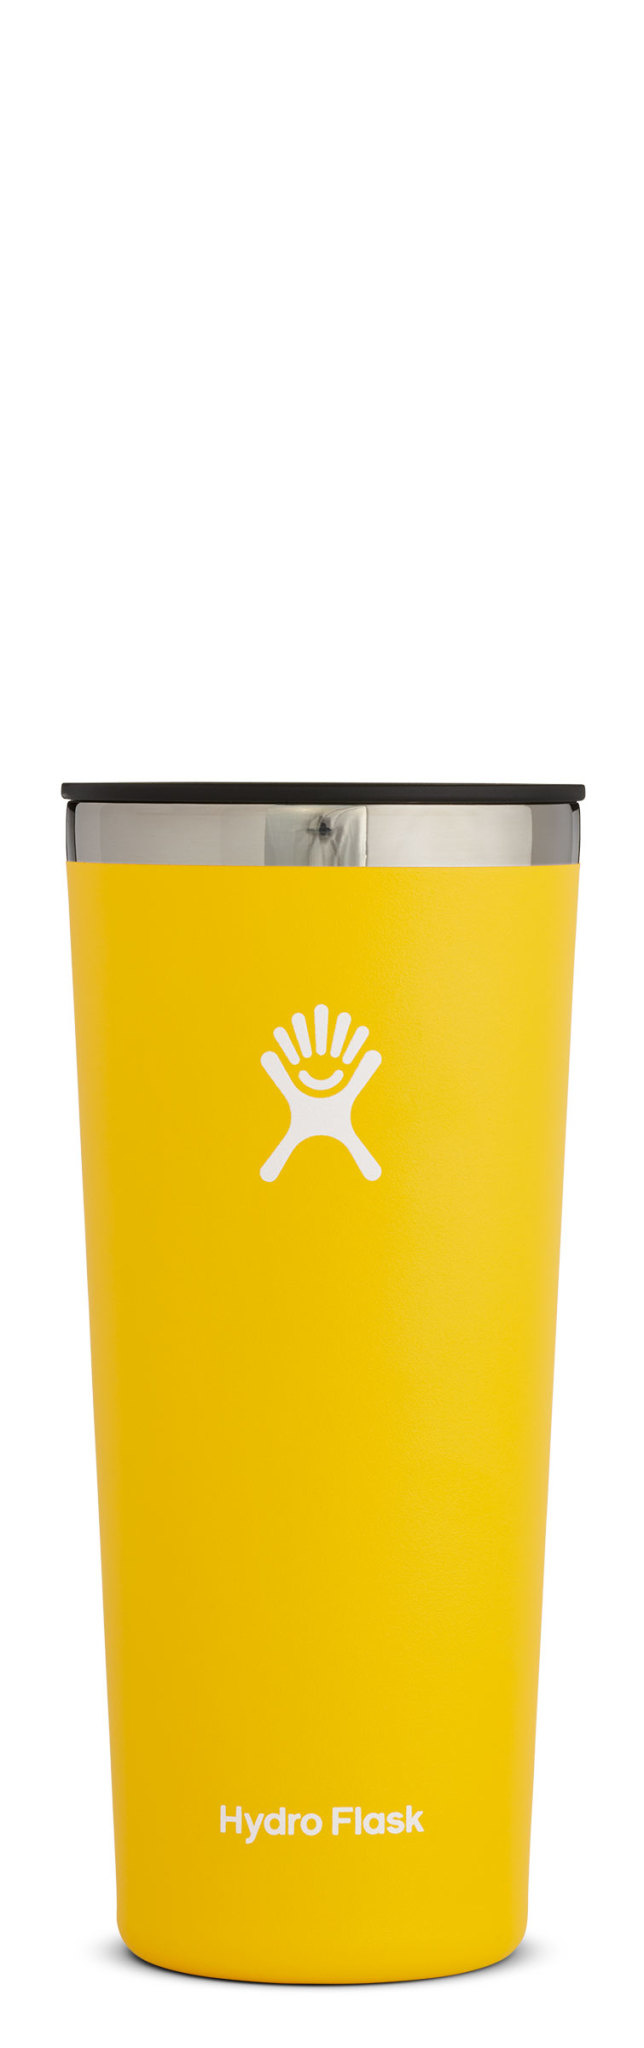 Hydro Flask 22oz Tumbler-1